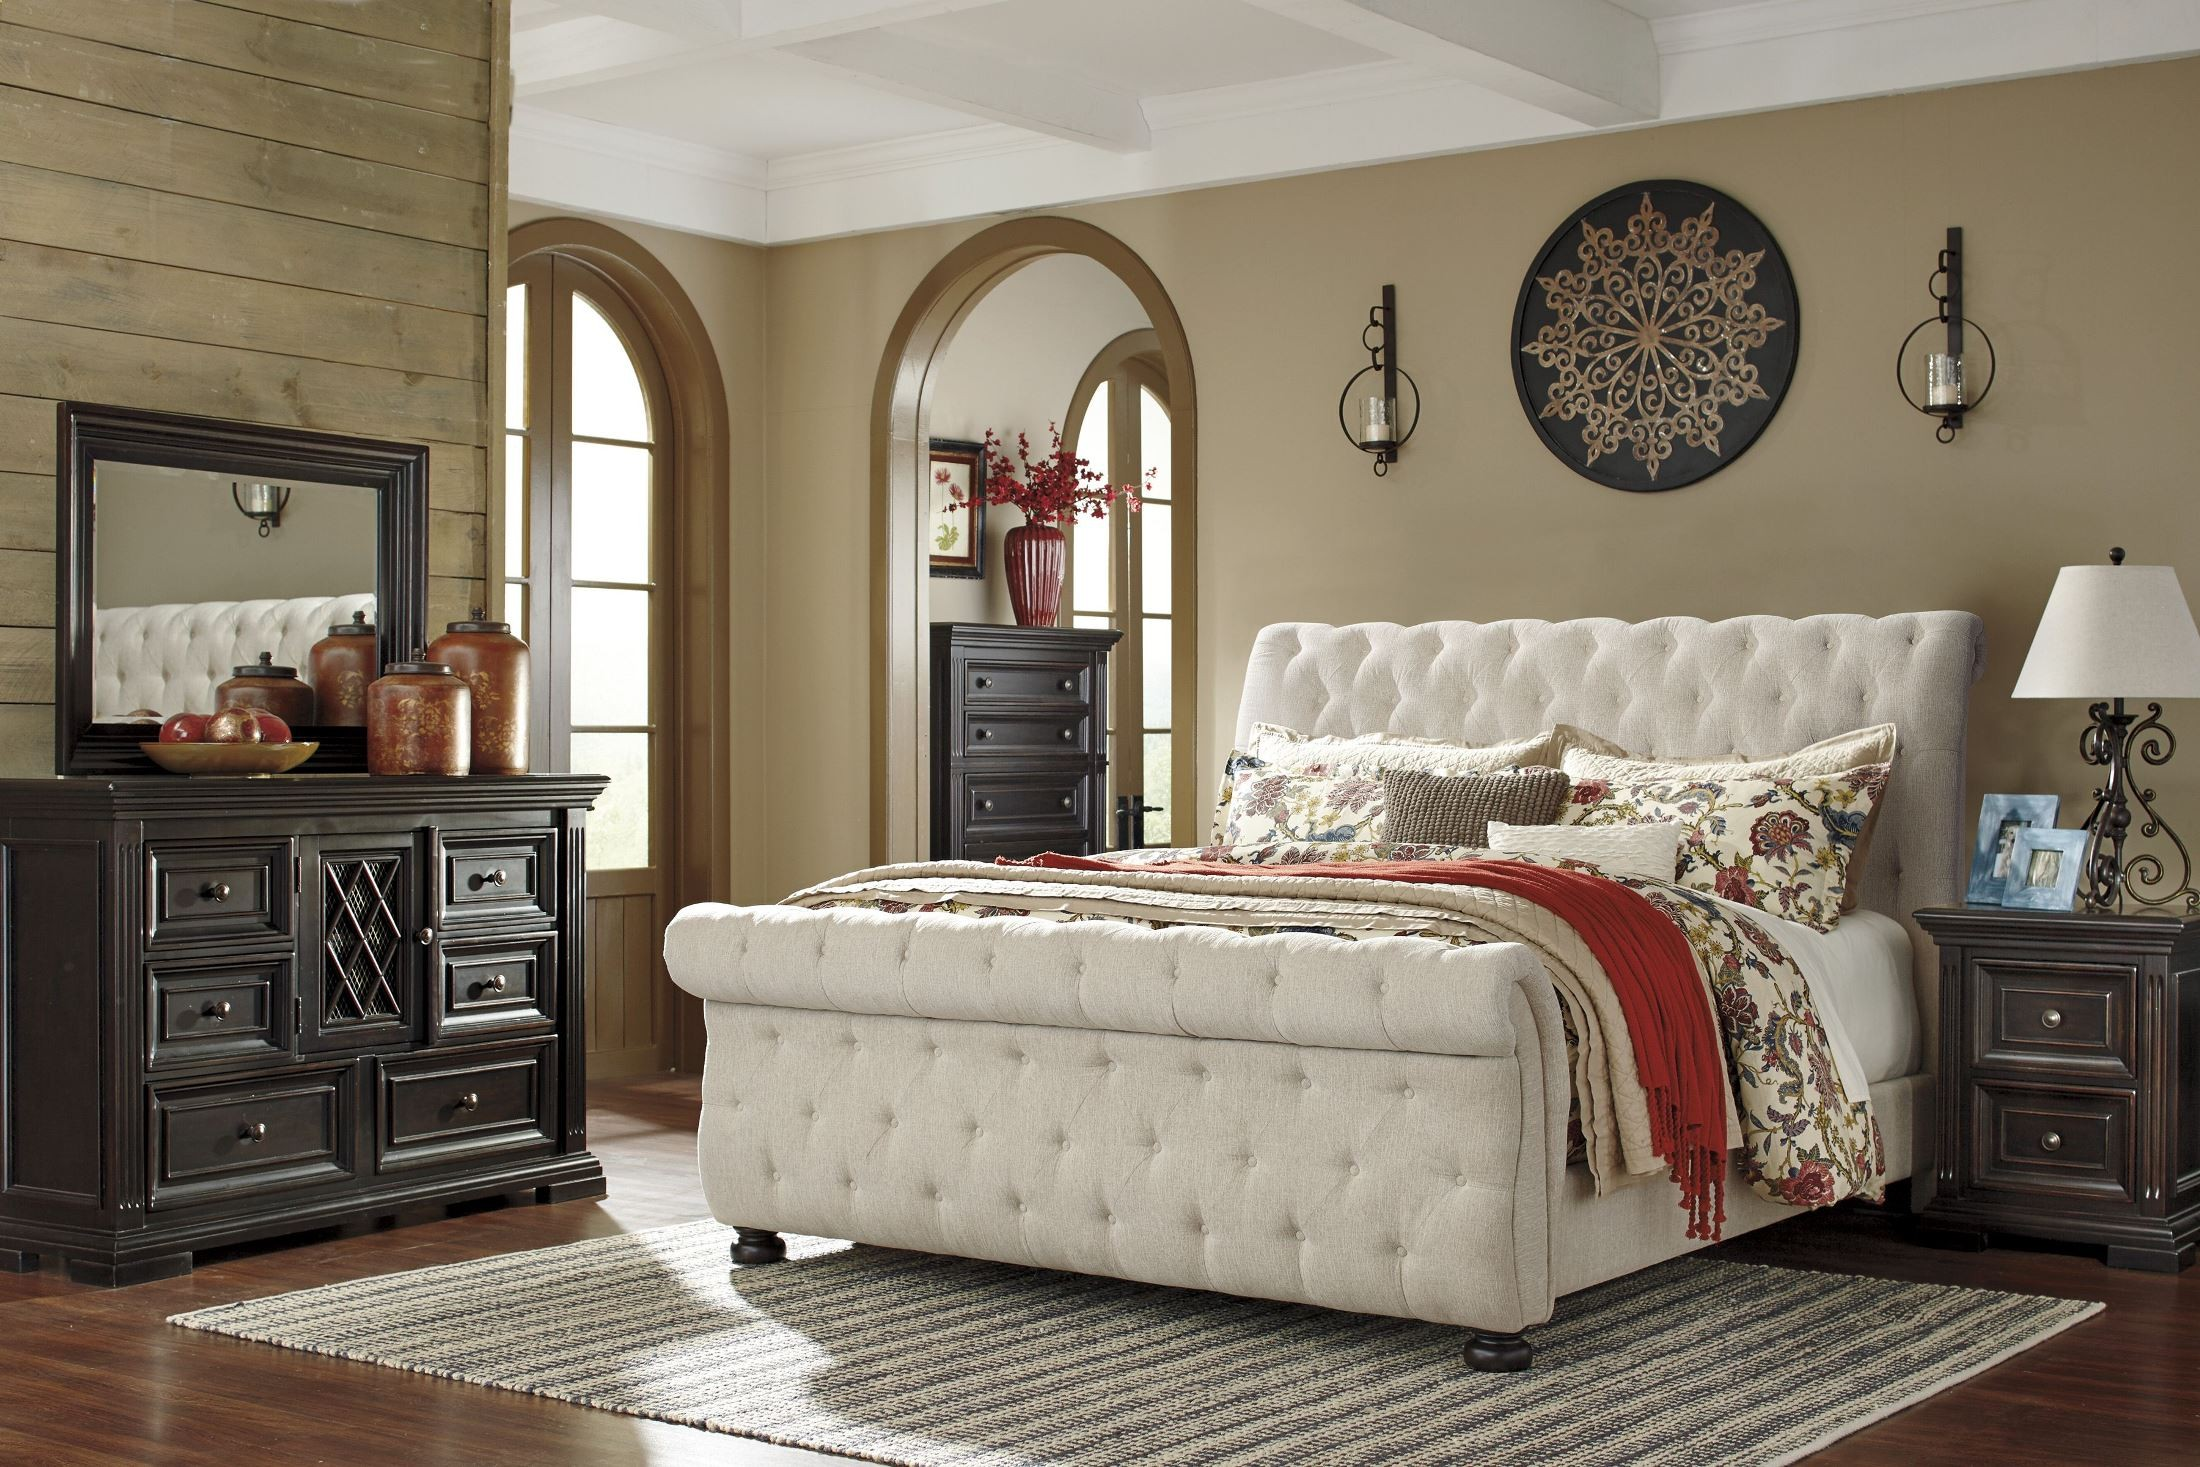 Willenburg Linen King Upholstered Sleigh Bed B643 78 76